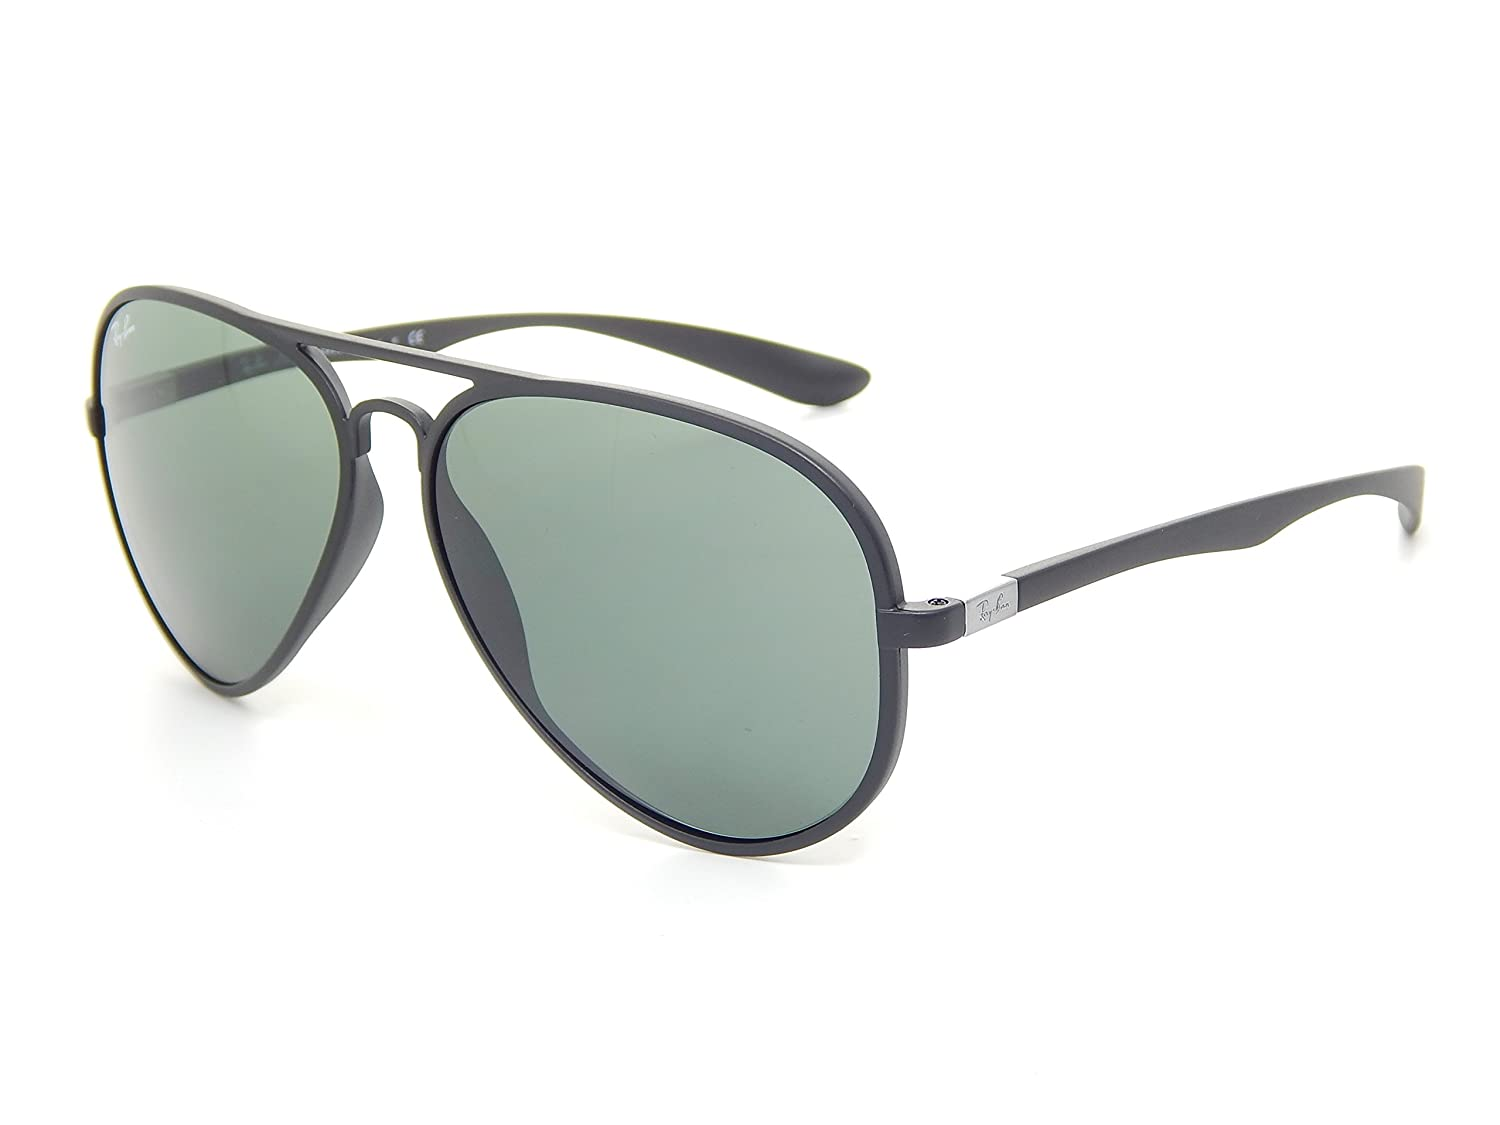 de873411388 New Ray Ban RB4180 601S71 Liteforce Aviator Tech Matte Black Green 58mm  Sunglasses  Amazon.ca  Shoes   Handbags